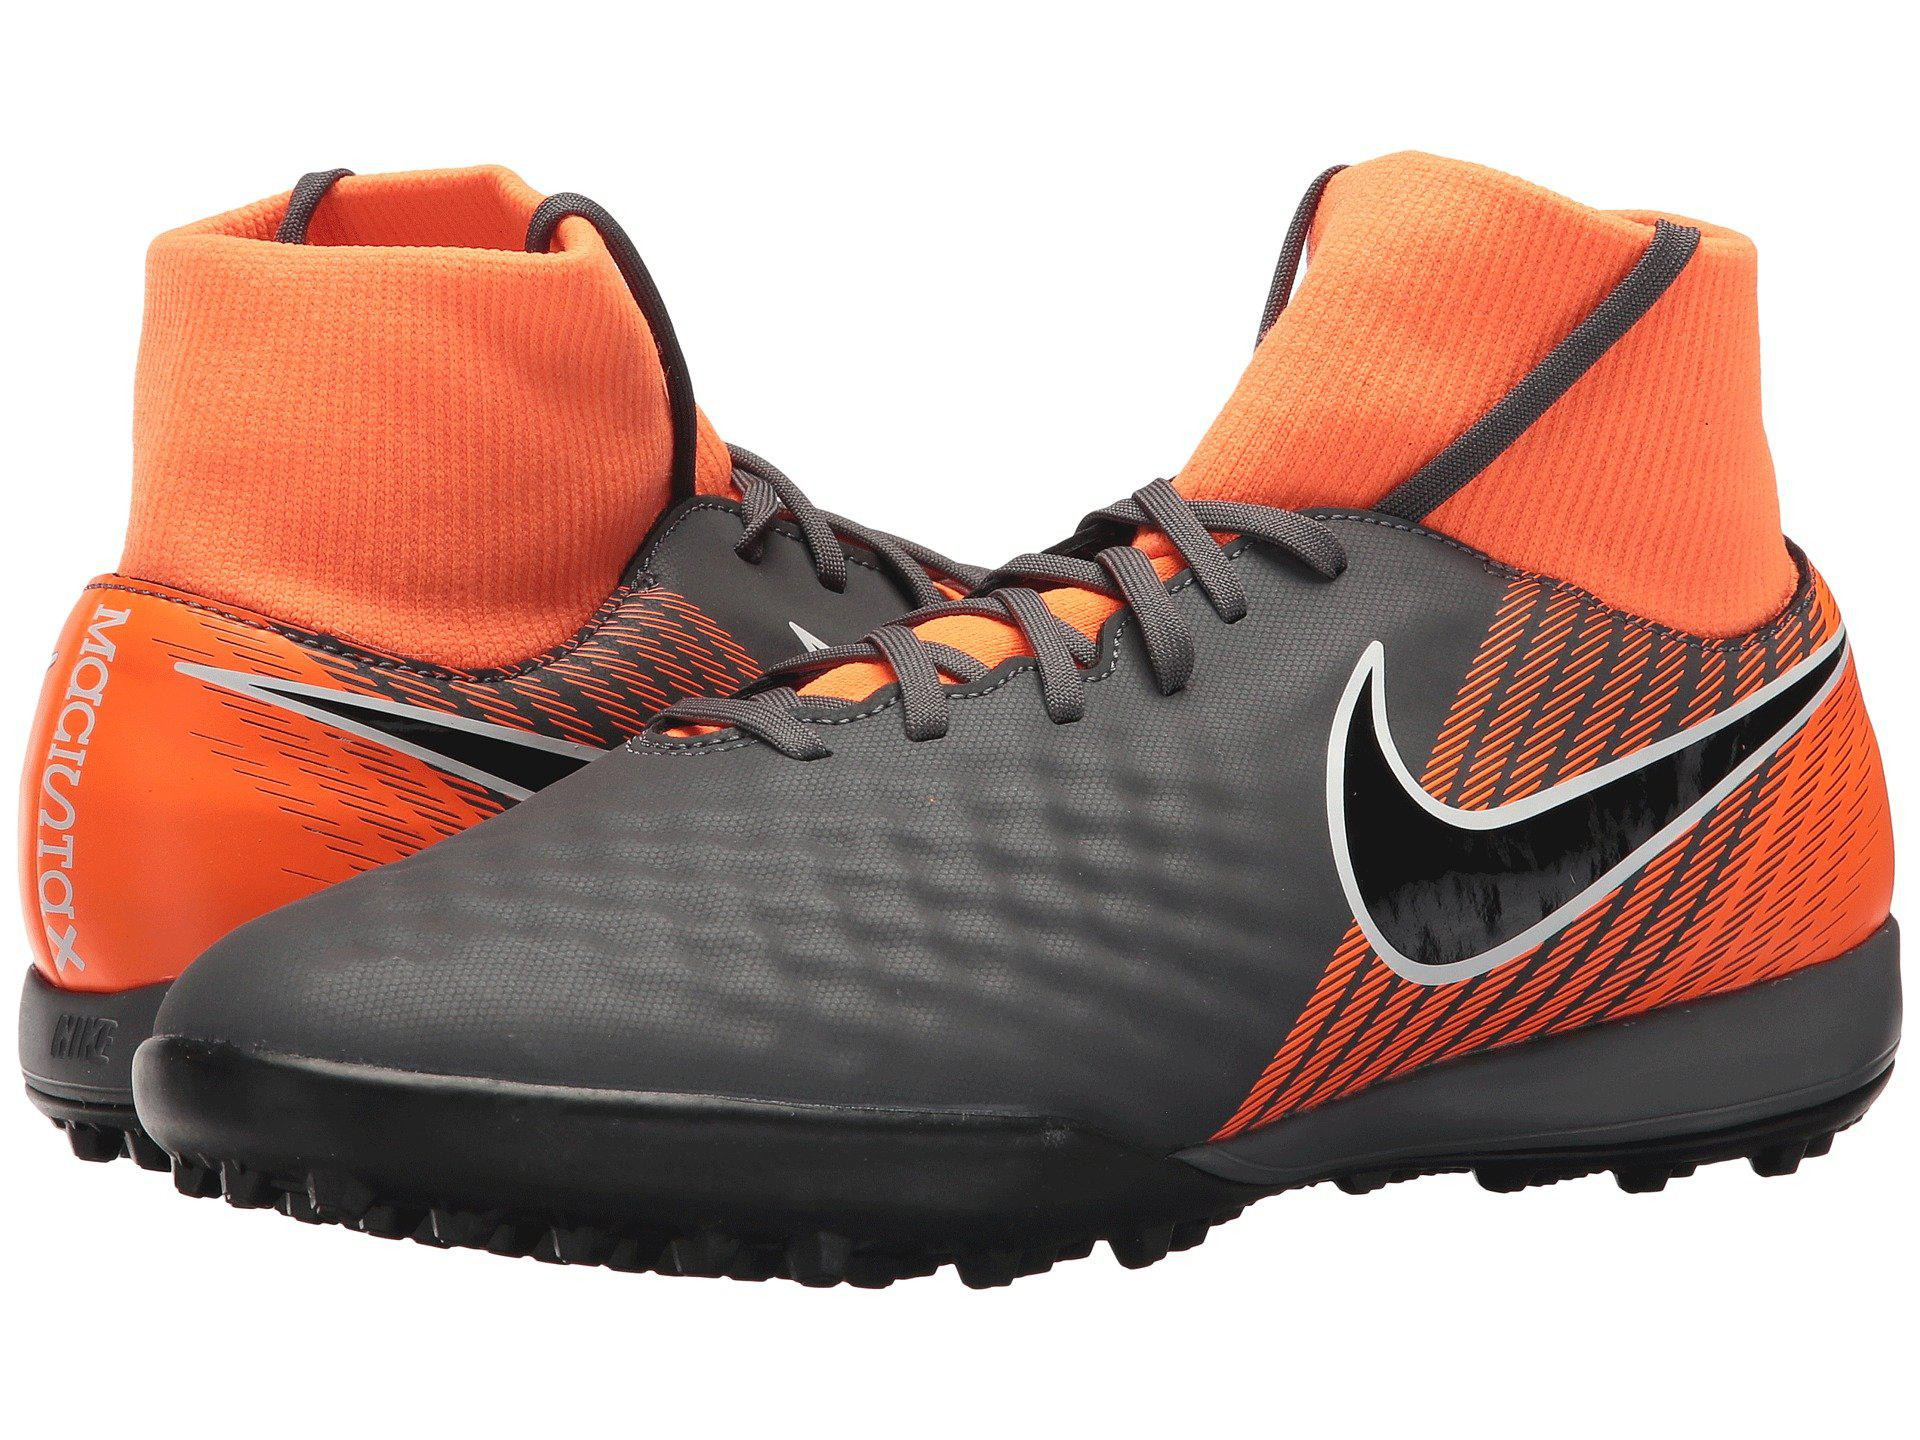 8a2829987be9 Lyst - Nike Magista Obrax 2 Academy Dynamic Fit Tf for Men